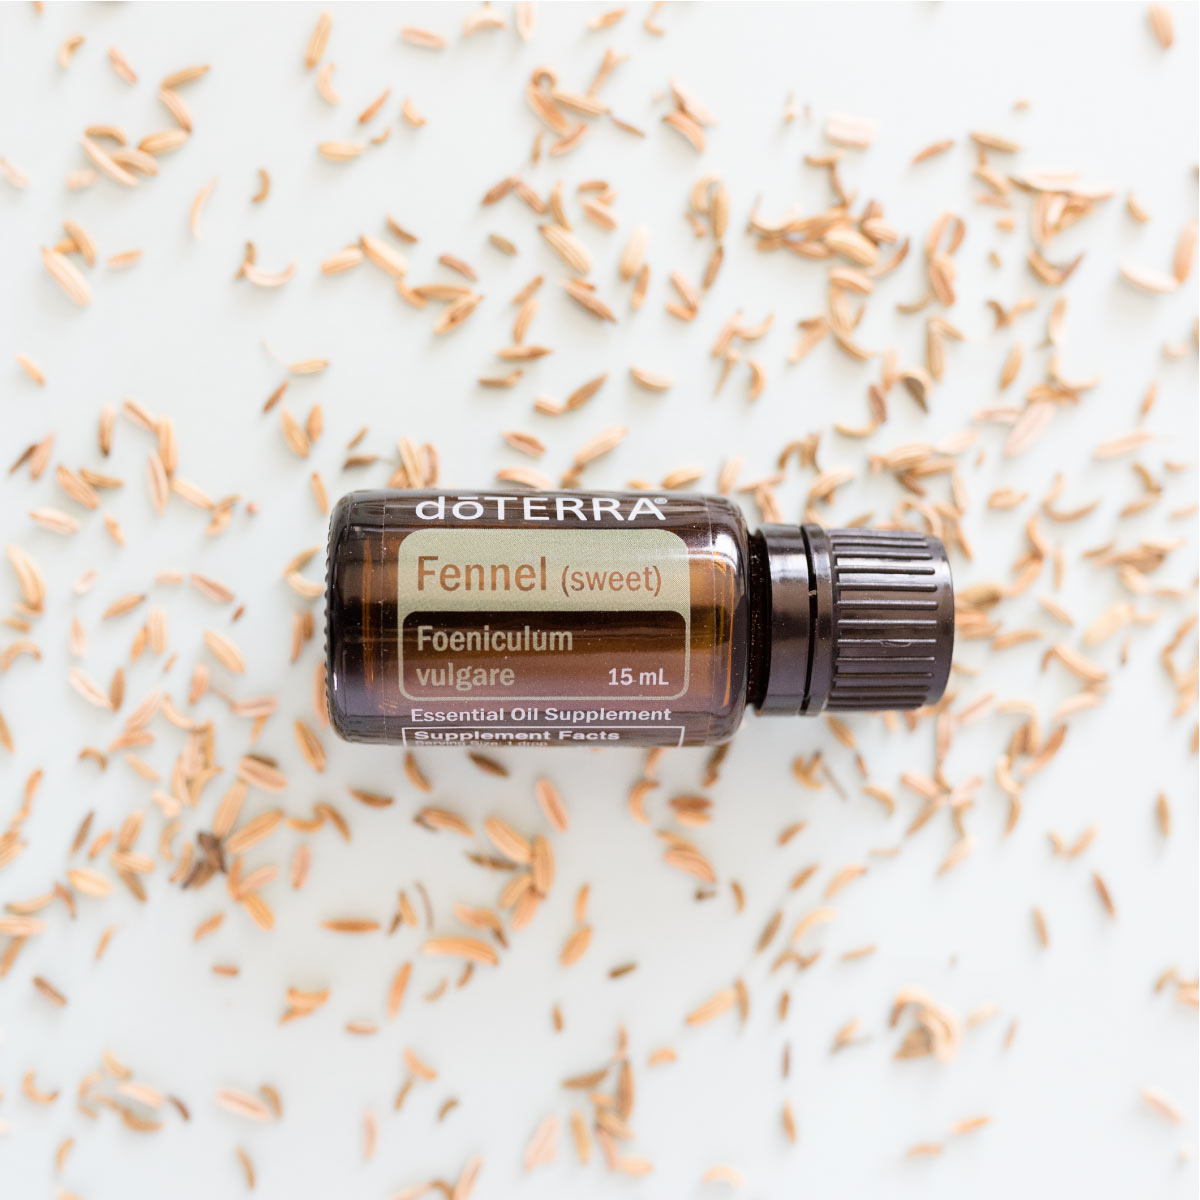 Bottle of doTERRA Fennel essential oil with fresh fennel seeds. What is Fennel essential oil used for? Many people use Fennel oil to promote healthy digestion, to add flavor to food, and to ease occasional stomach upset stomach or bloating.*